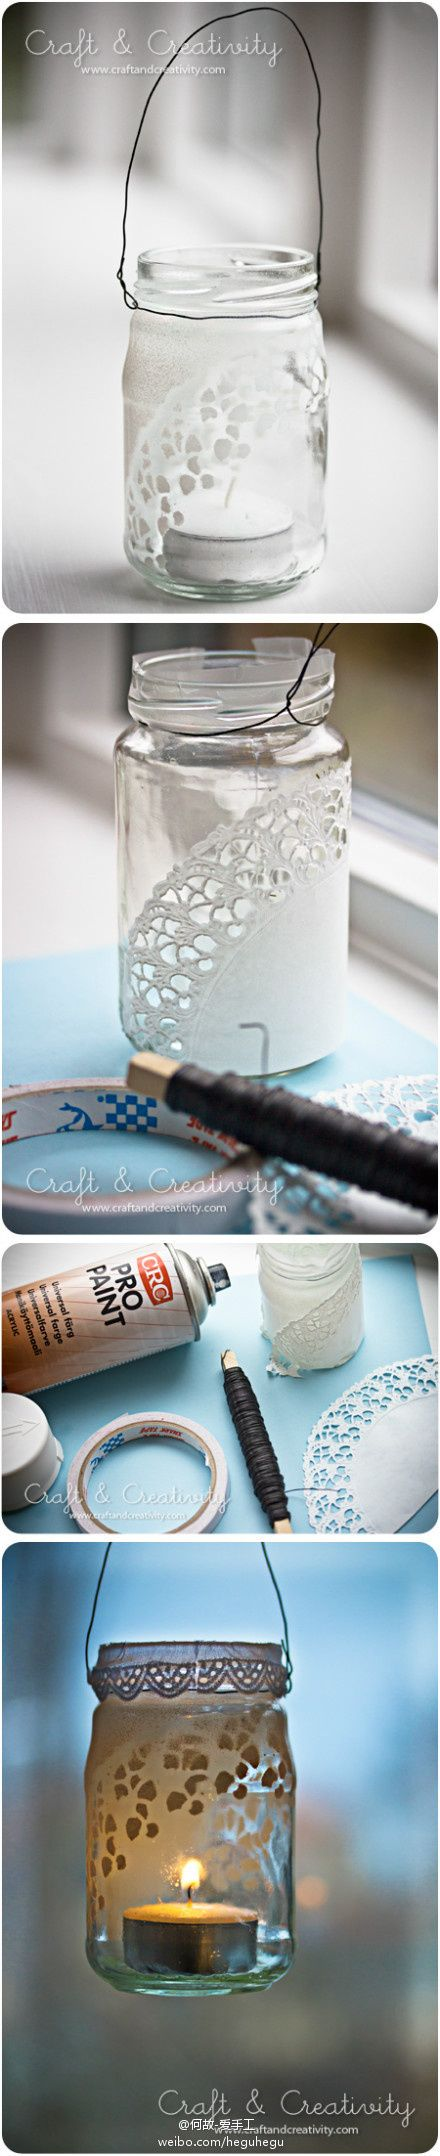 make a votive holder from a jar. spray paint over a paper doily to reveal a lace pattern.  would be cute with frosted glass paint. |Pinned from PinTo for iPad|